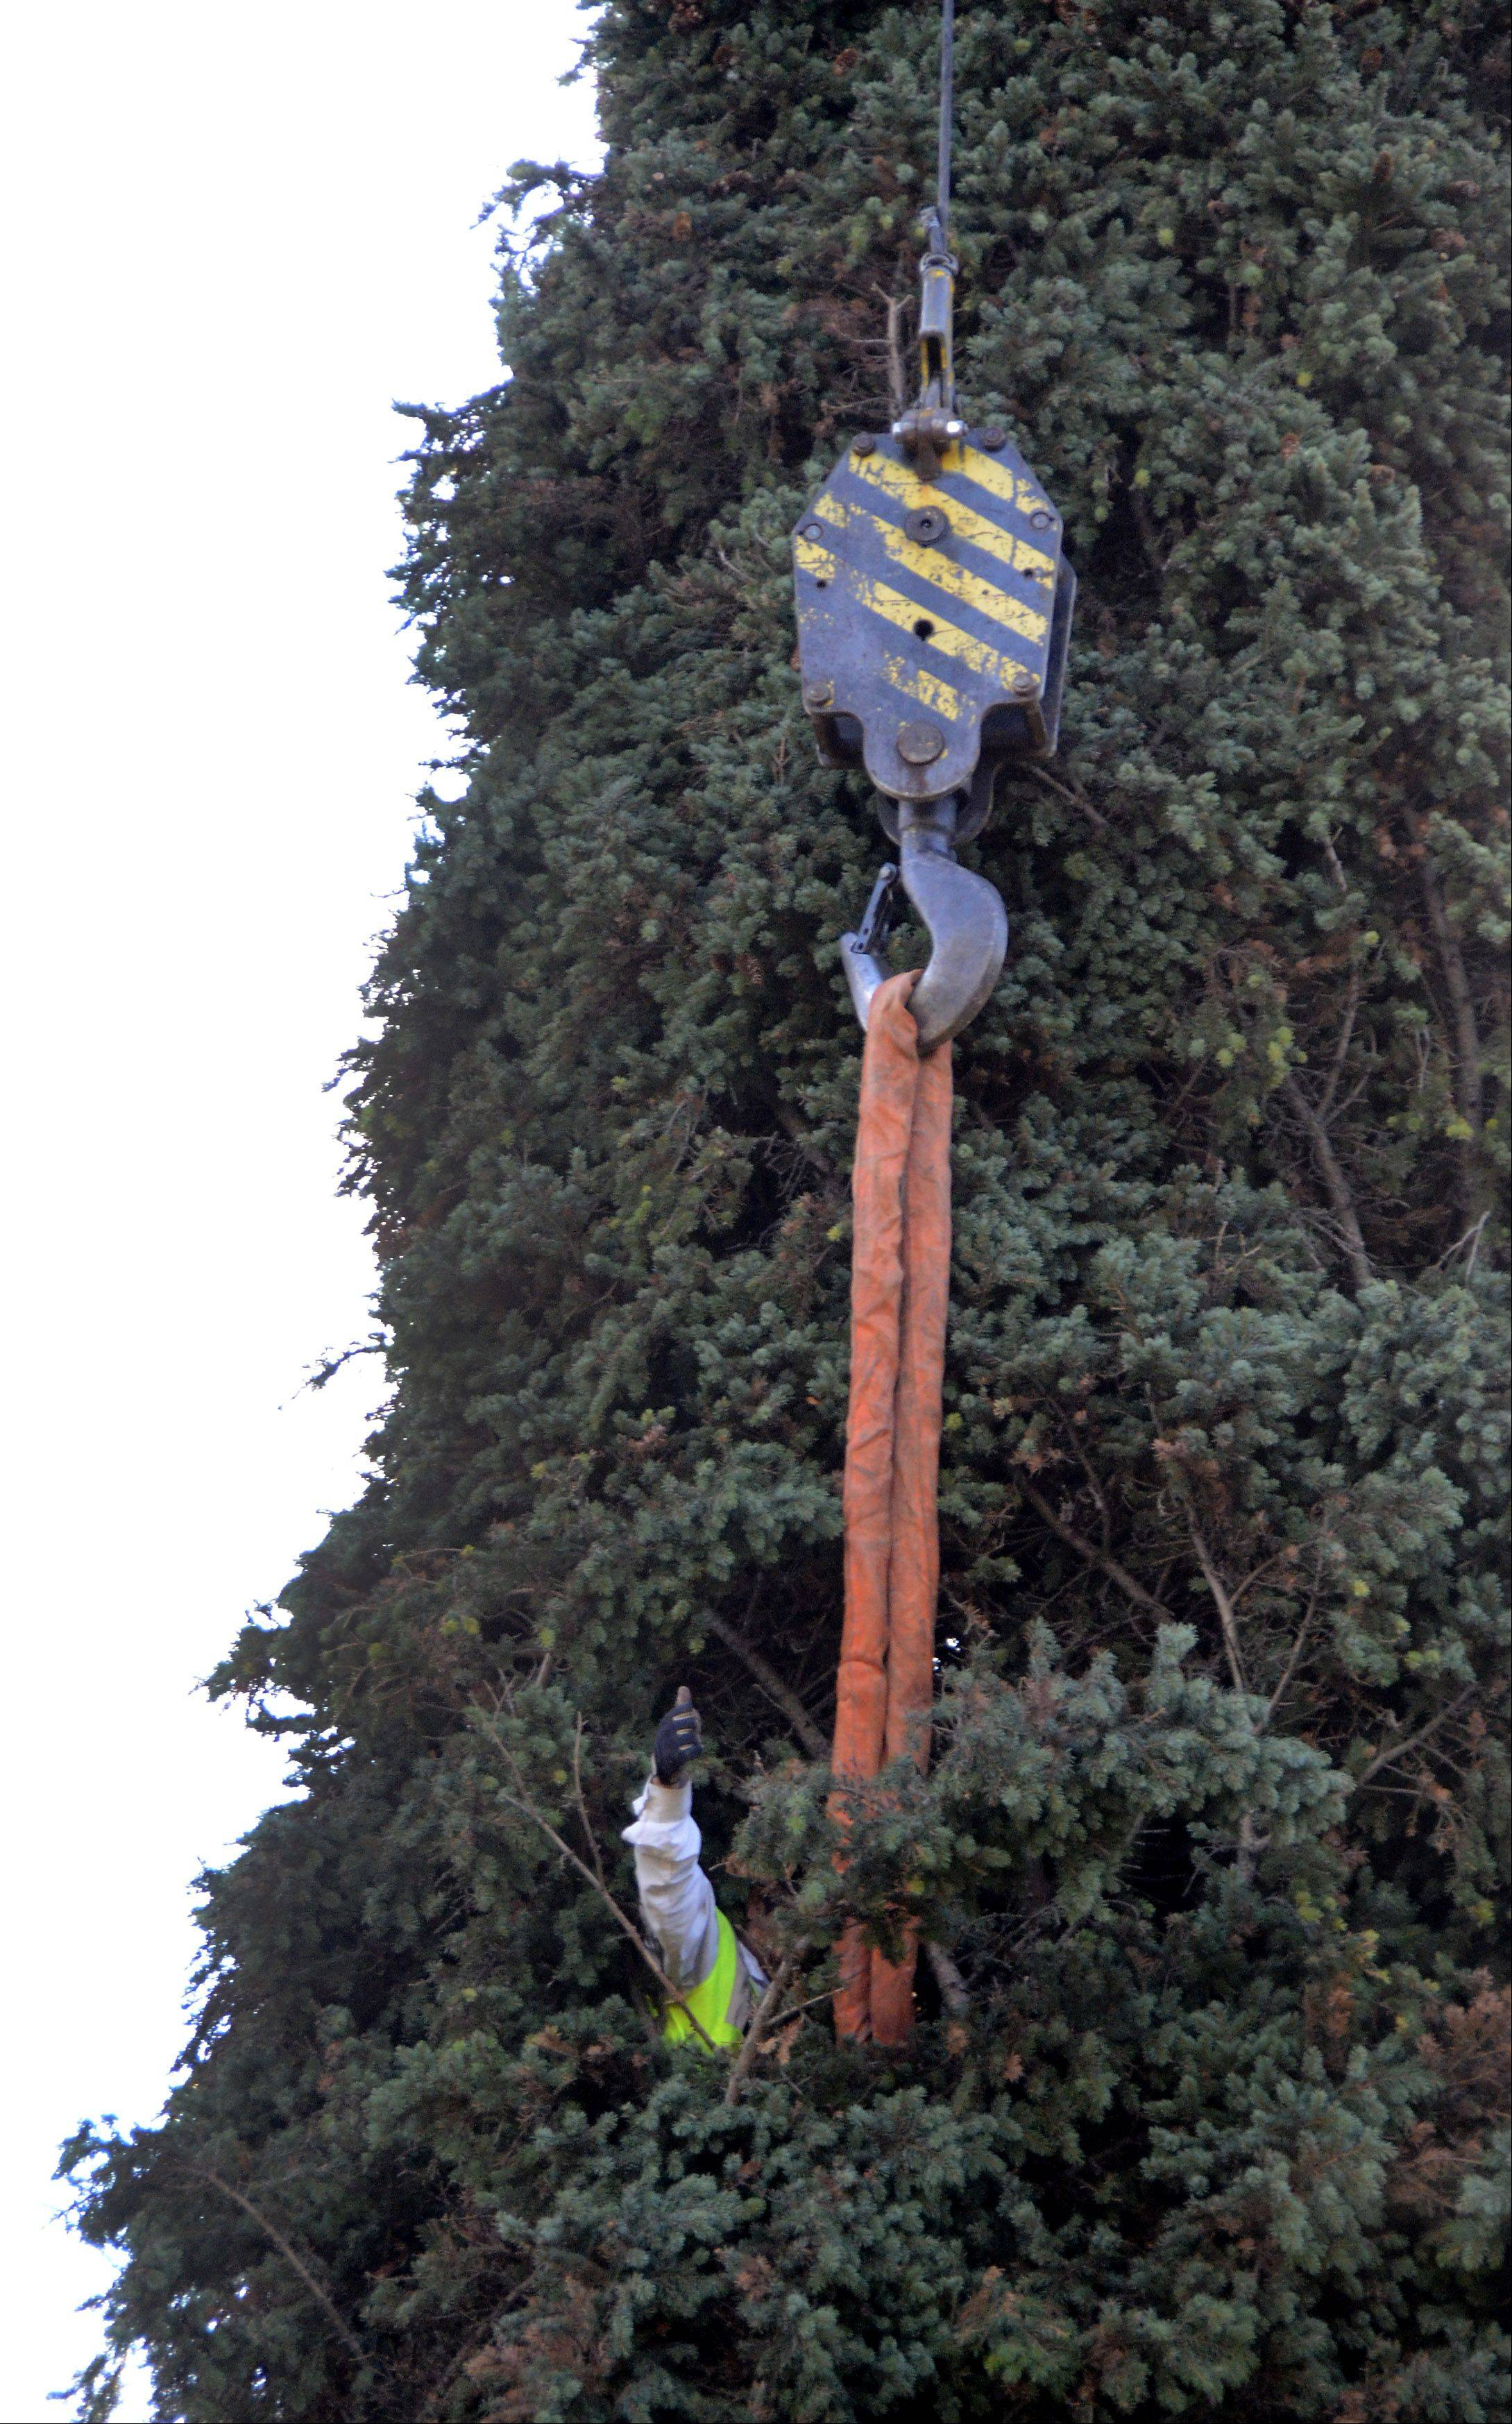 A worker signals go up to a crane operator as a 64-foot Colorado spruce tree is cut down Thursday morning at the Prospect Heights home of Barbara Theiszmann. The tree later was transported to Chicago, where it will serve as the city's official Christmas tree.